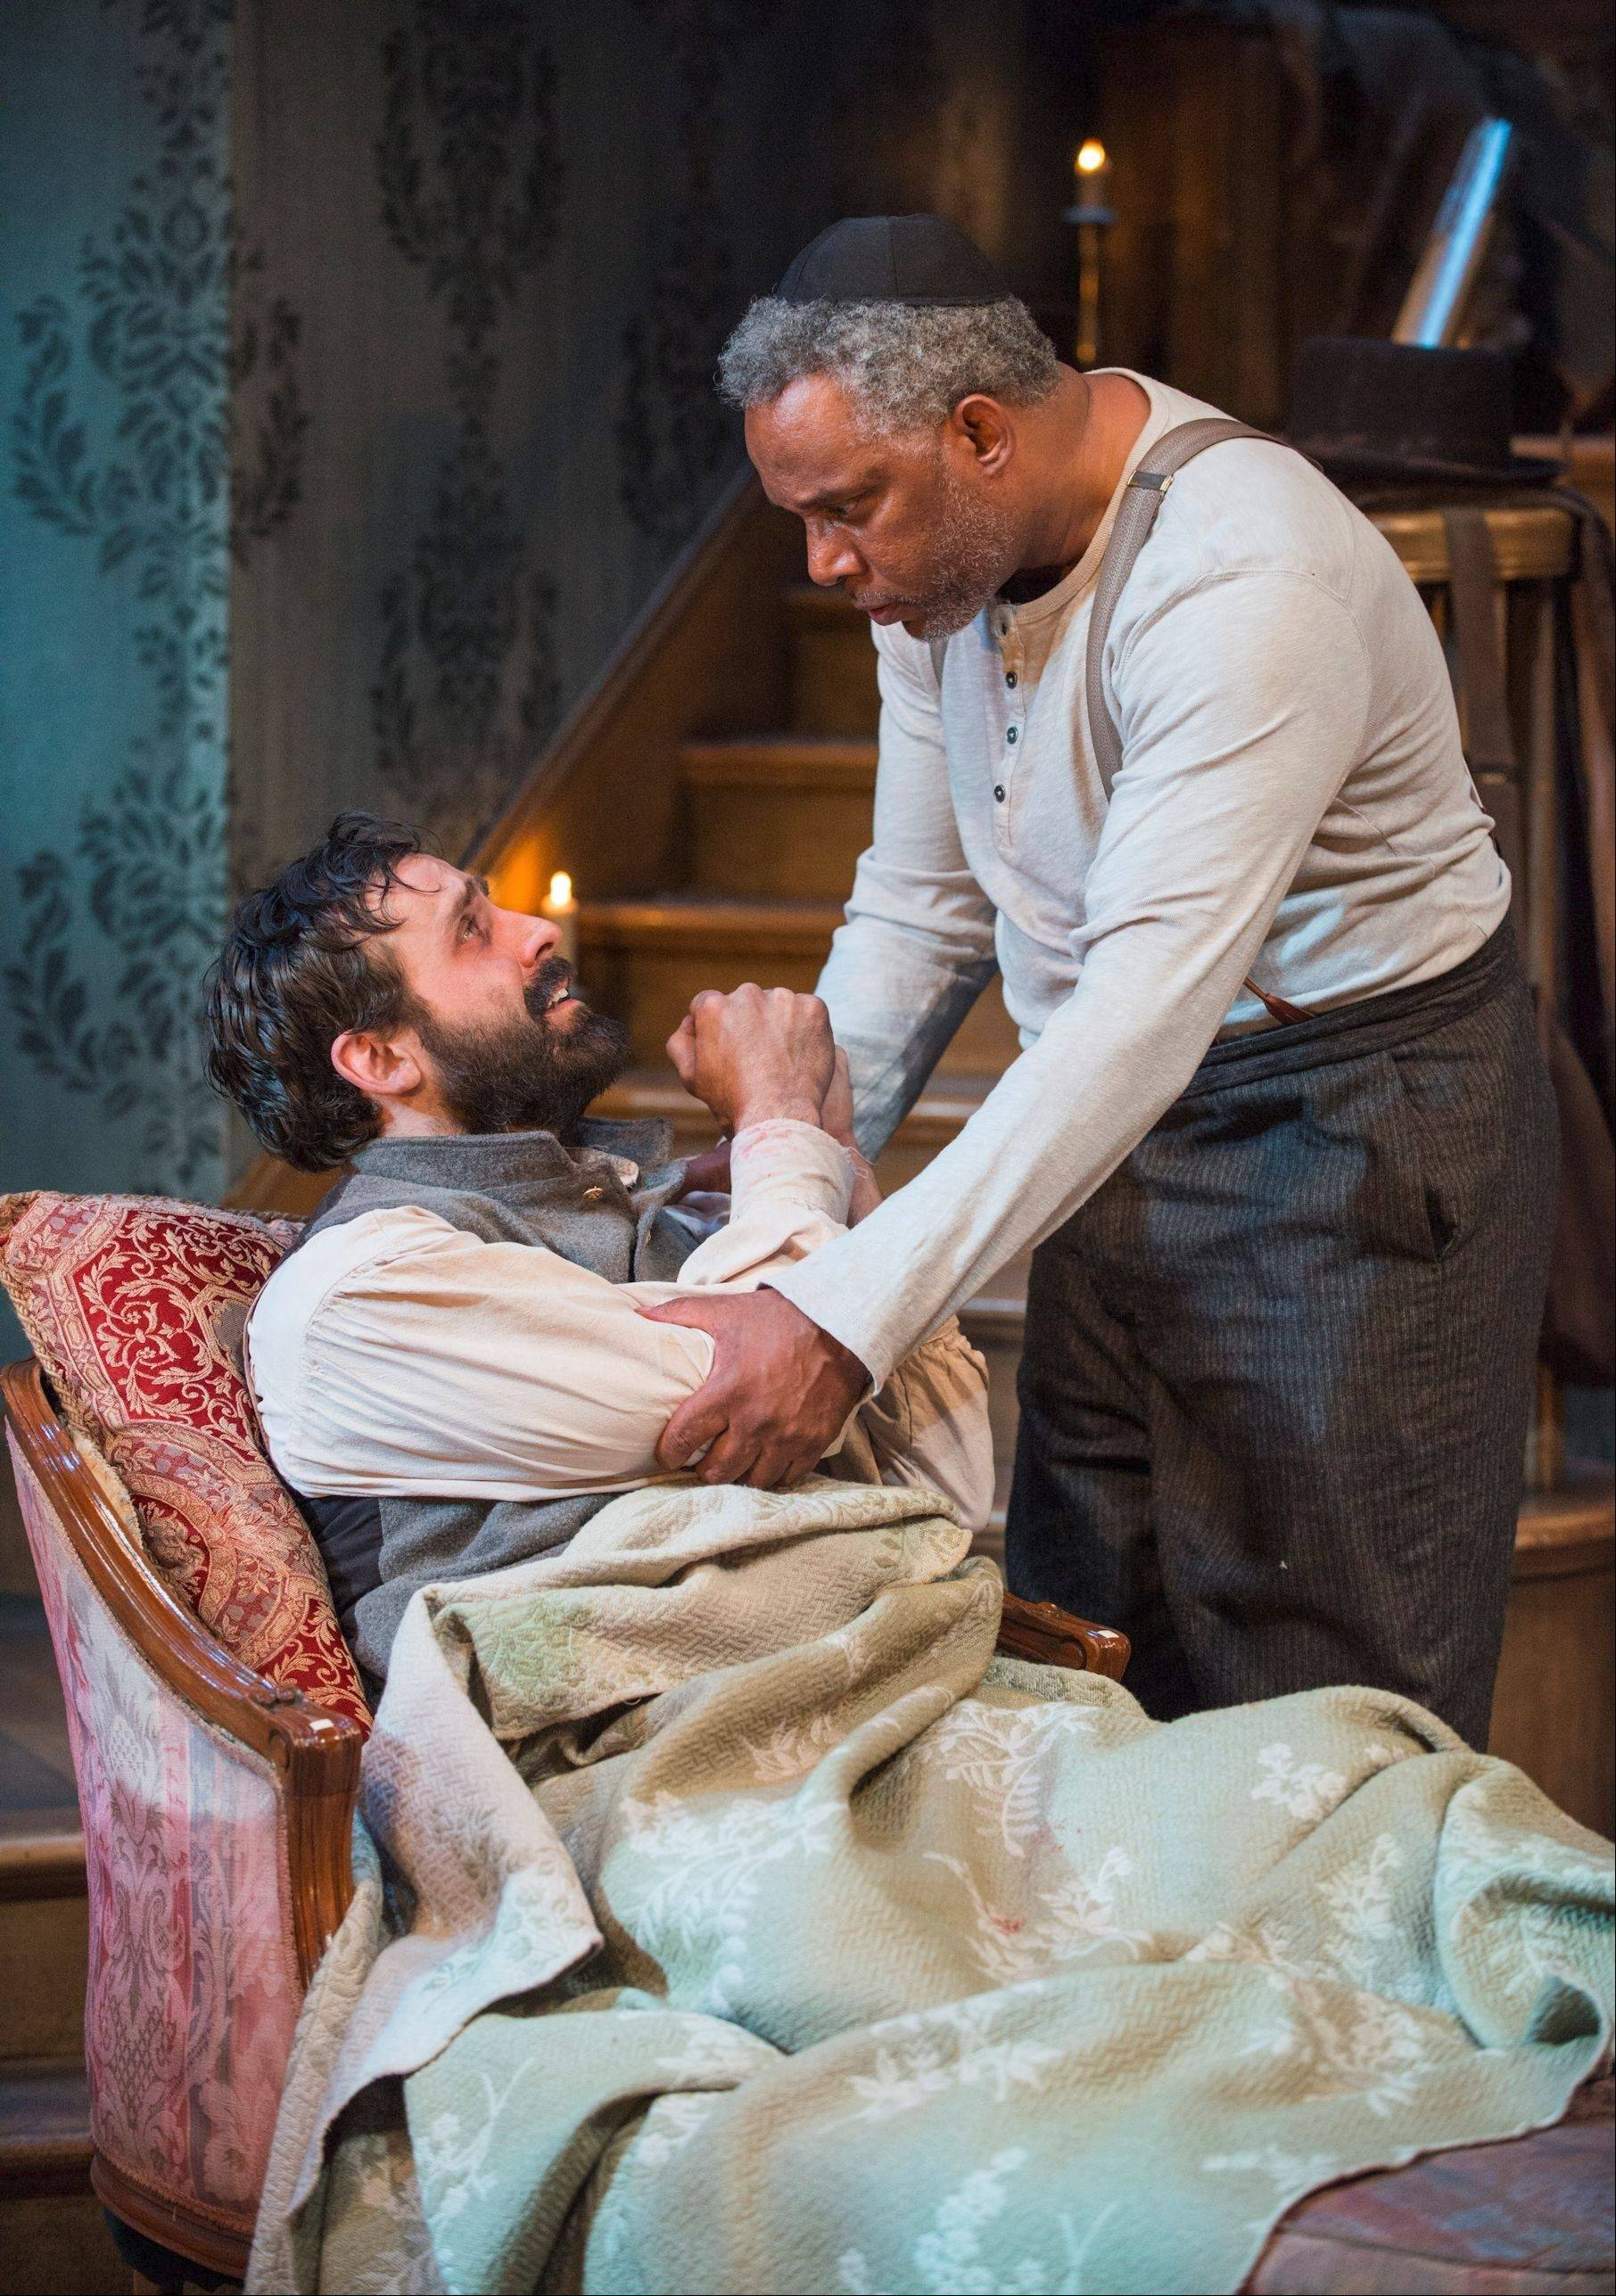 "Guilt-ridden Caleb (Derek Gaspar, left) reveals some gut-wrenching news to Simon (Tim Edward Rhoze), who has managed to retain his moral center in an immoral situation, in Northlight Theatre's Chicago-area premiere of ""The Whipping Man"" by Matthew Lopez."